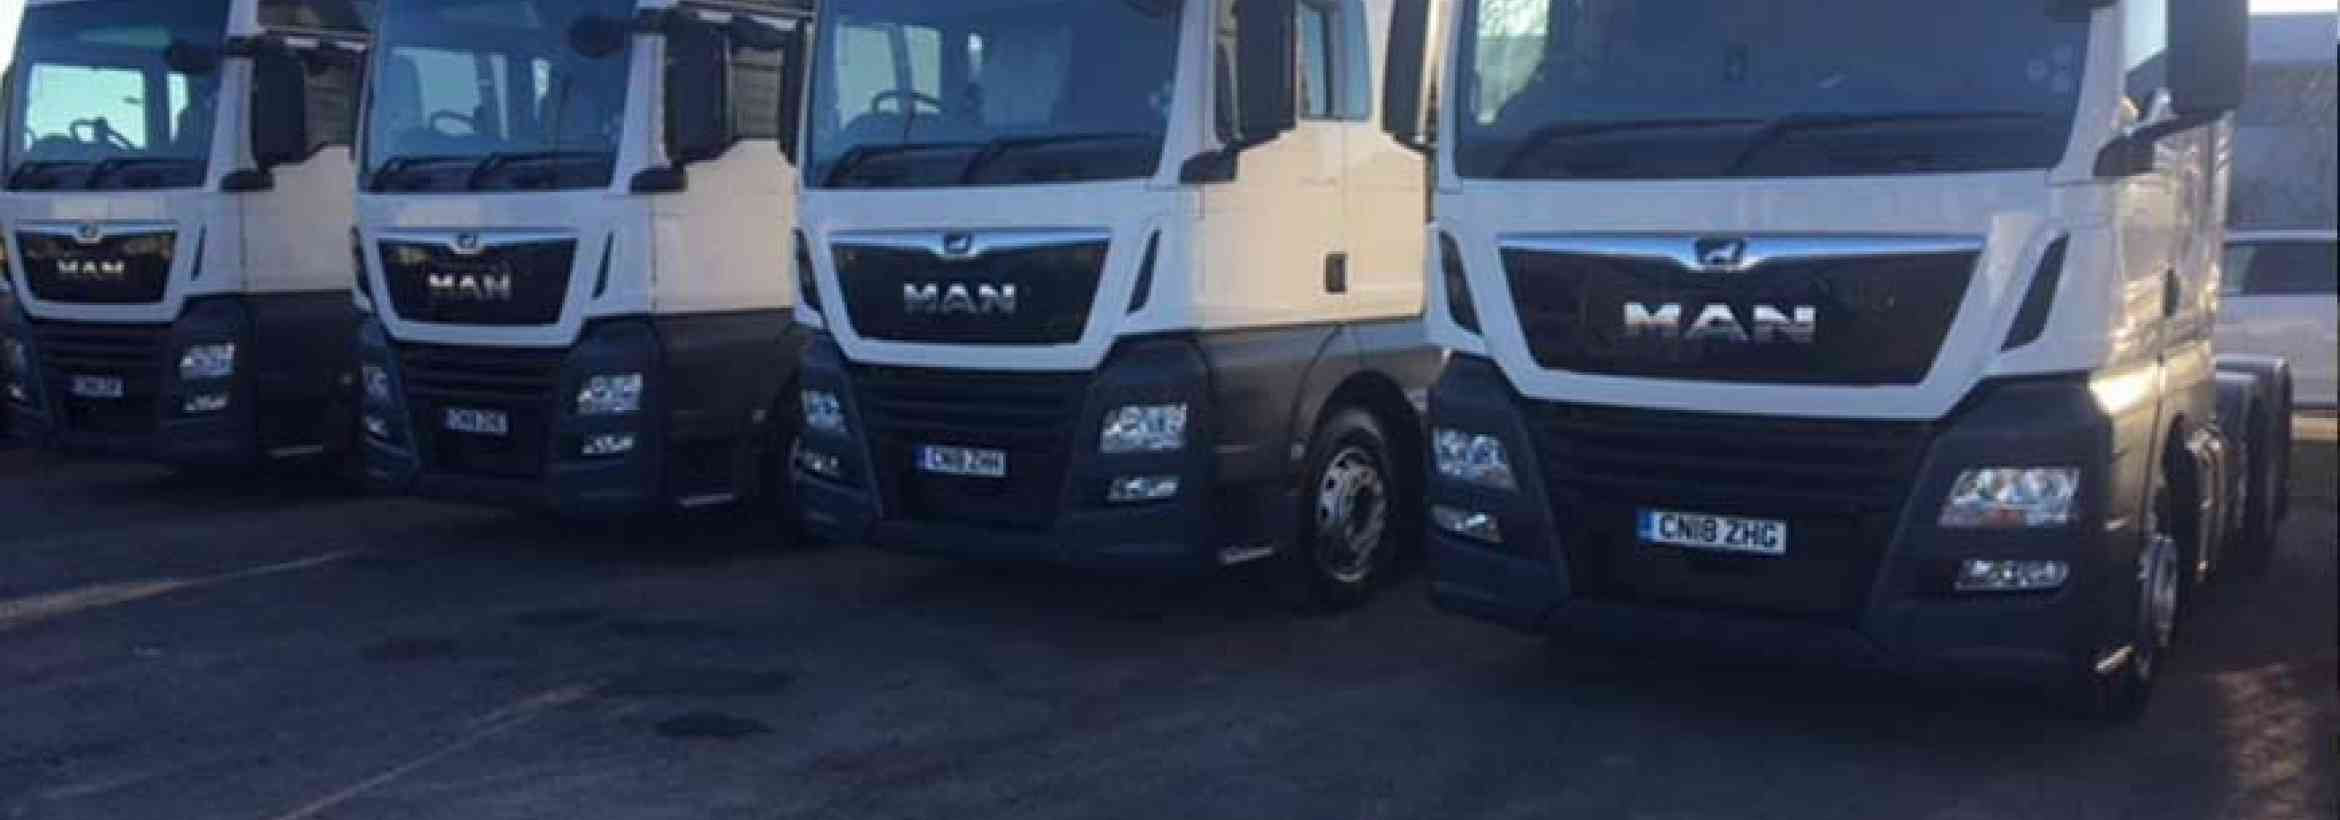 Wild Water Group adds four New MAN TGX XXL tractors to their fleet